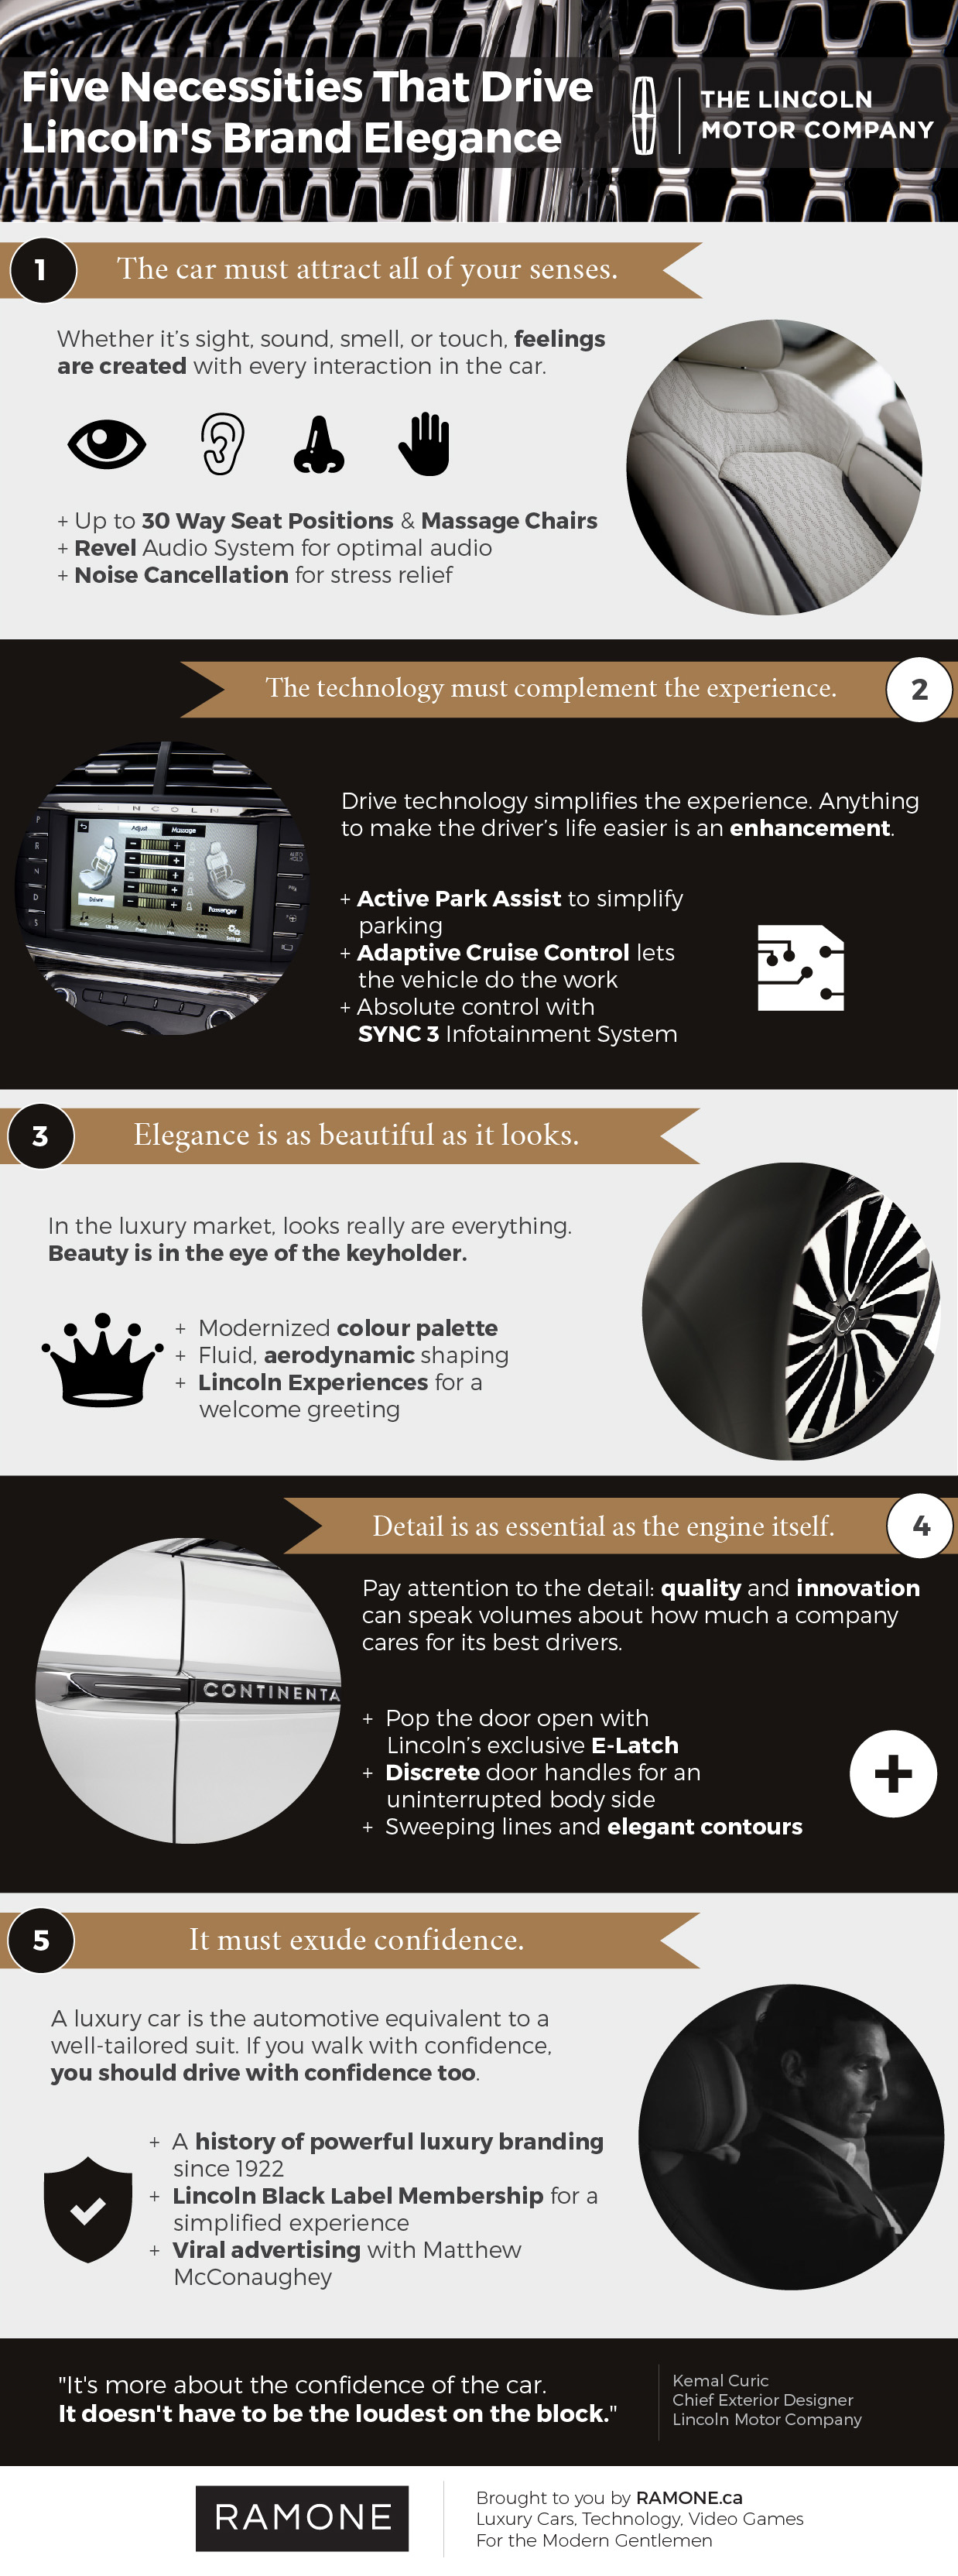 Five_Necessities_That_Drive_Lincolns_Elegance_Infographic_Ramone-v1